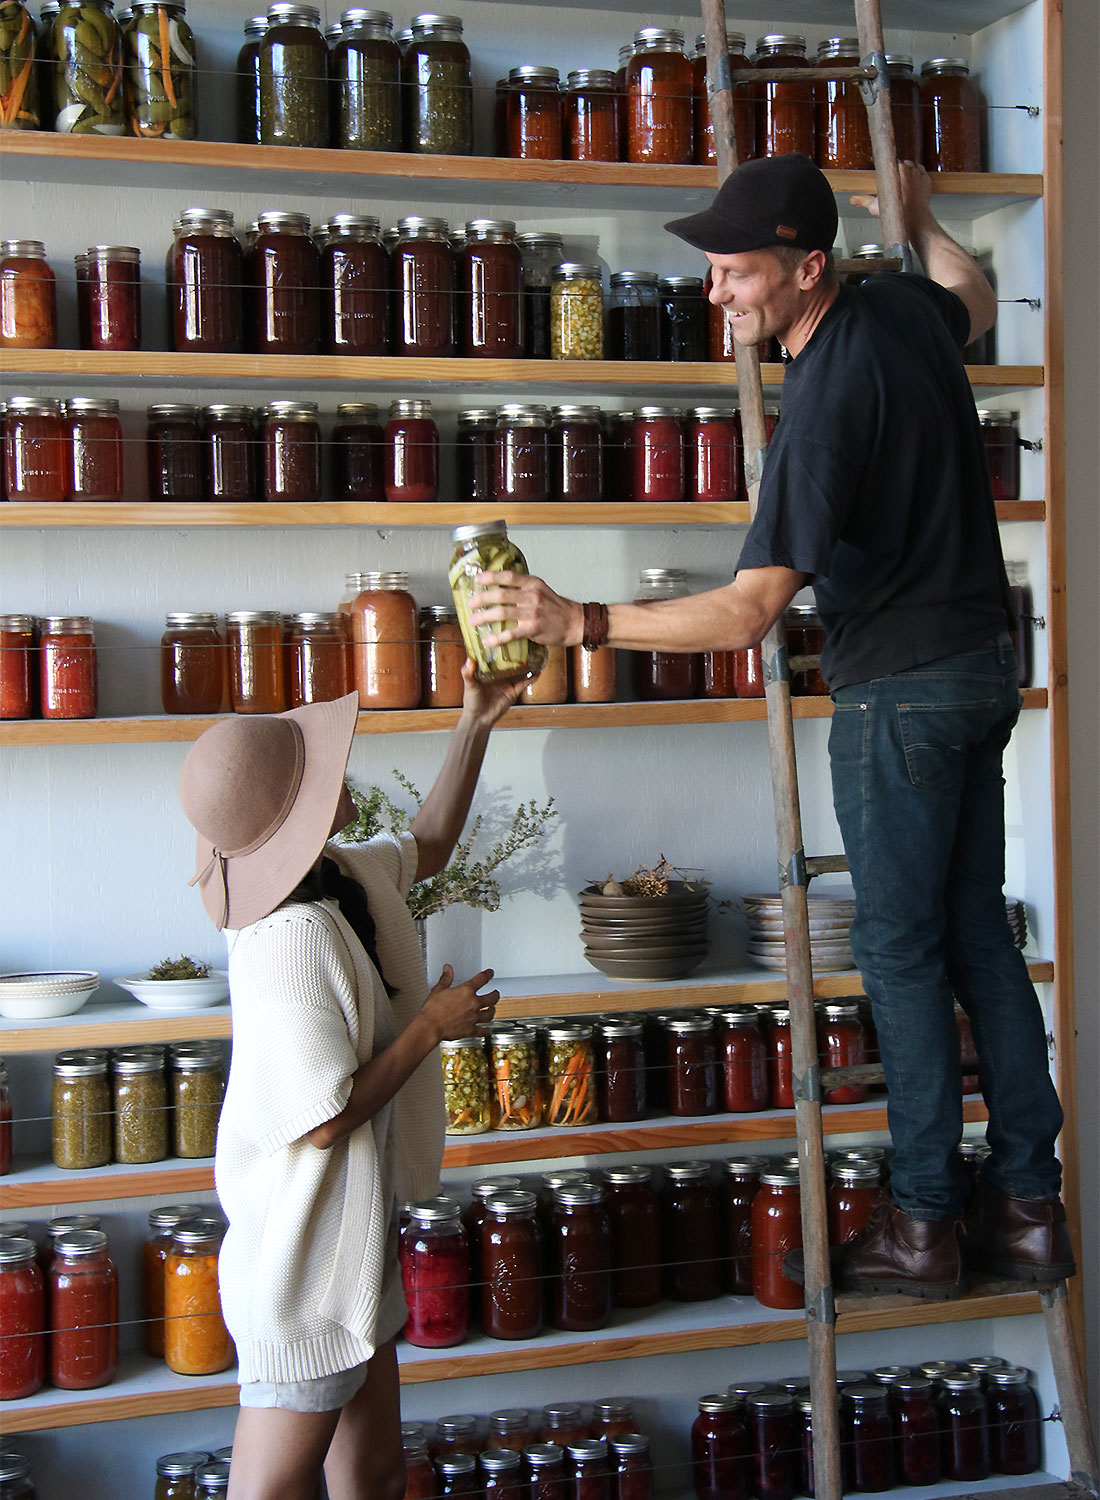 Dalia Martinez and Jason Sokach of flower and bone in Santa Rosa. Heather irwin/PD